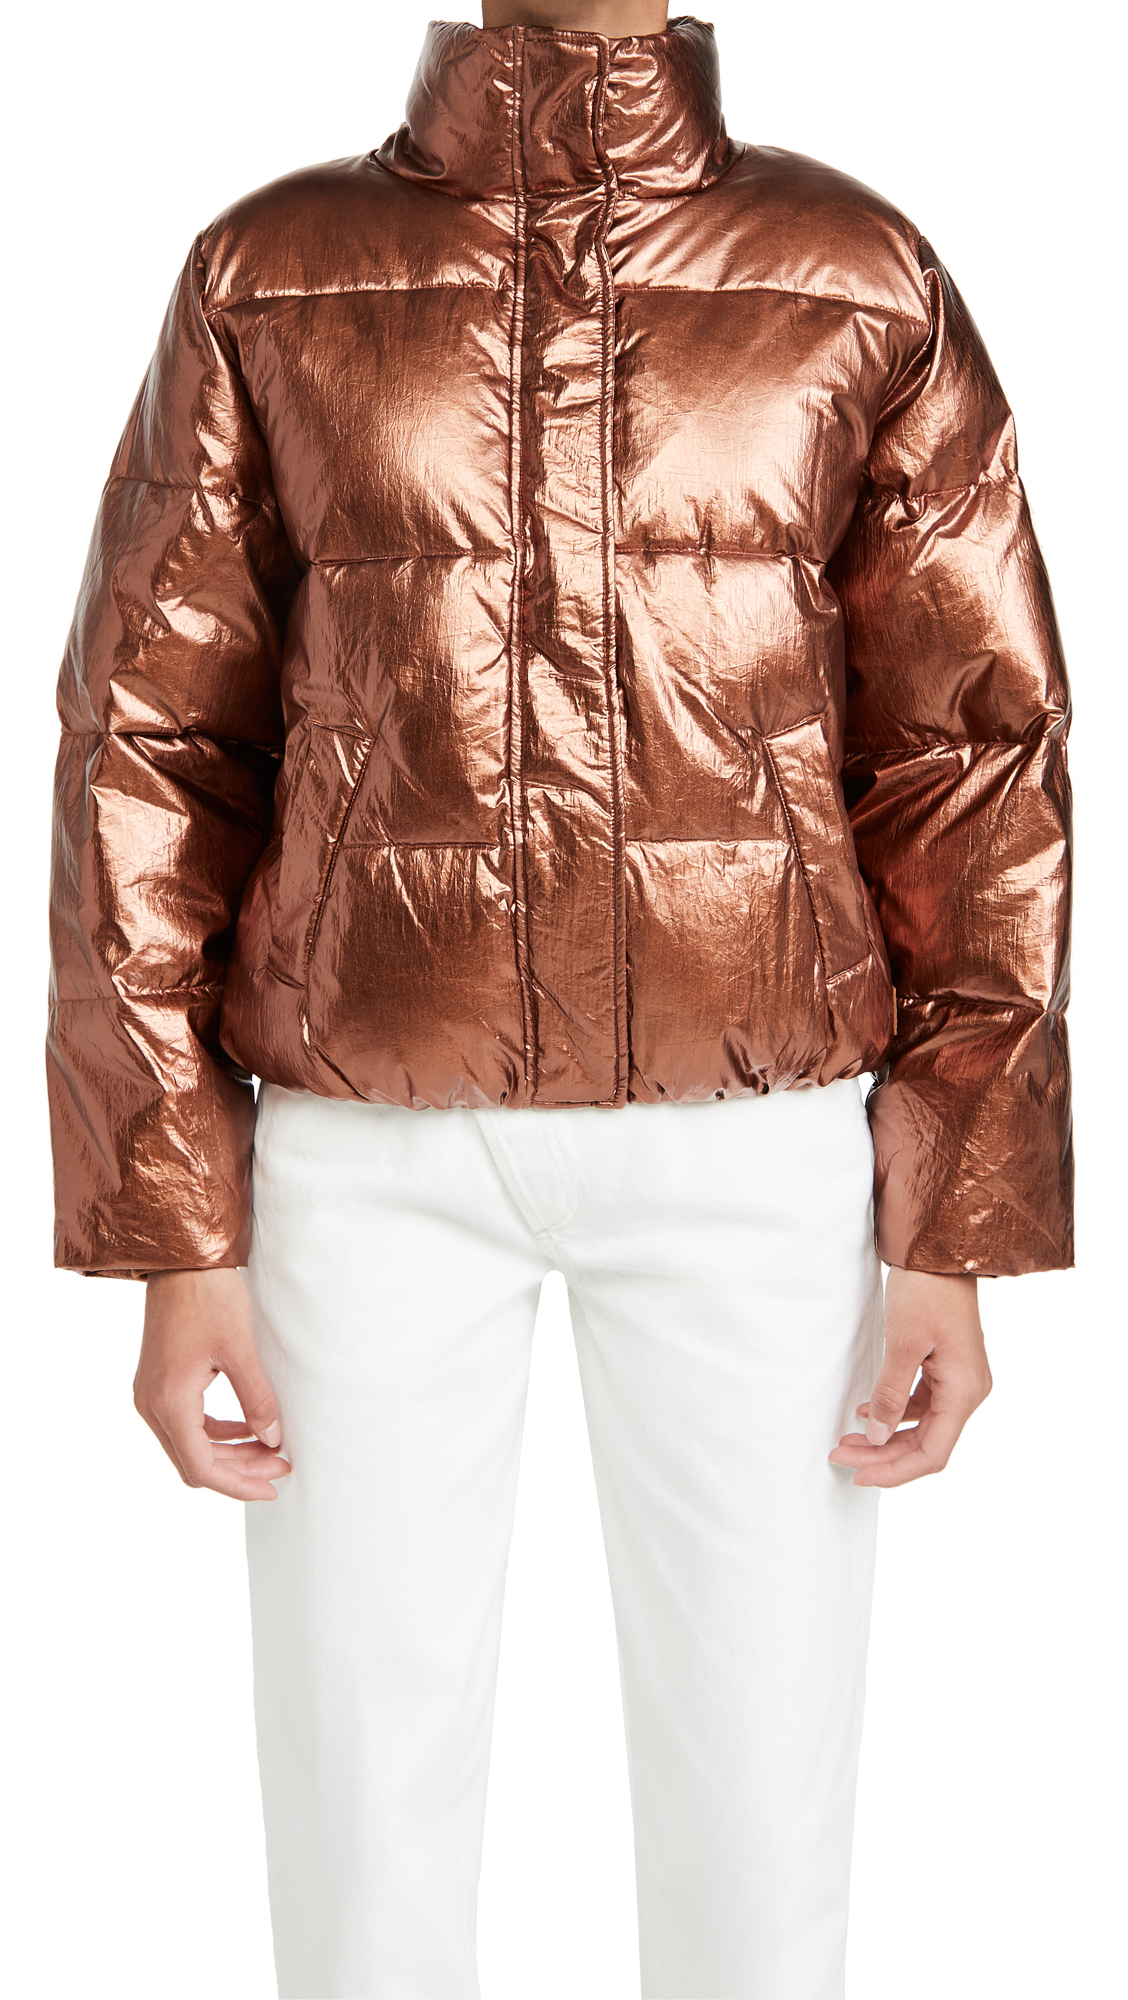 Scotch & Soda/Maison Scotch Padded Metallic Puffer